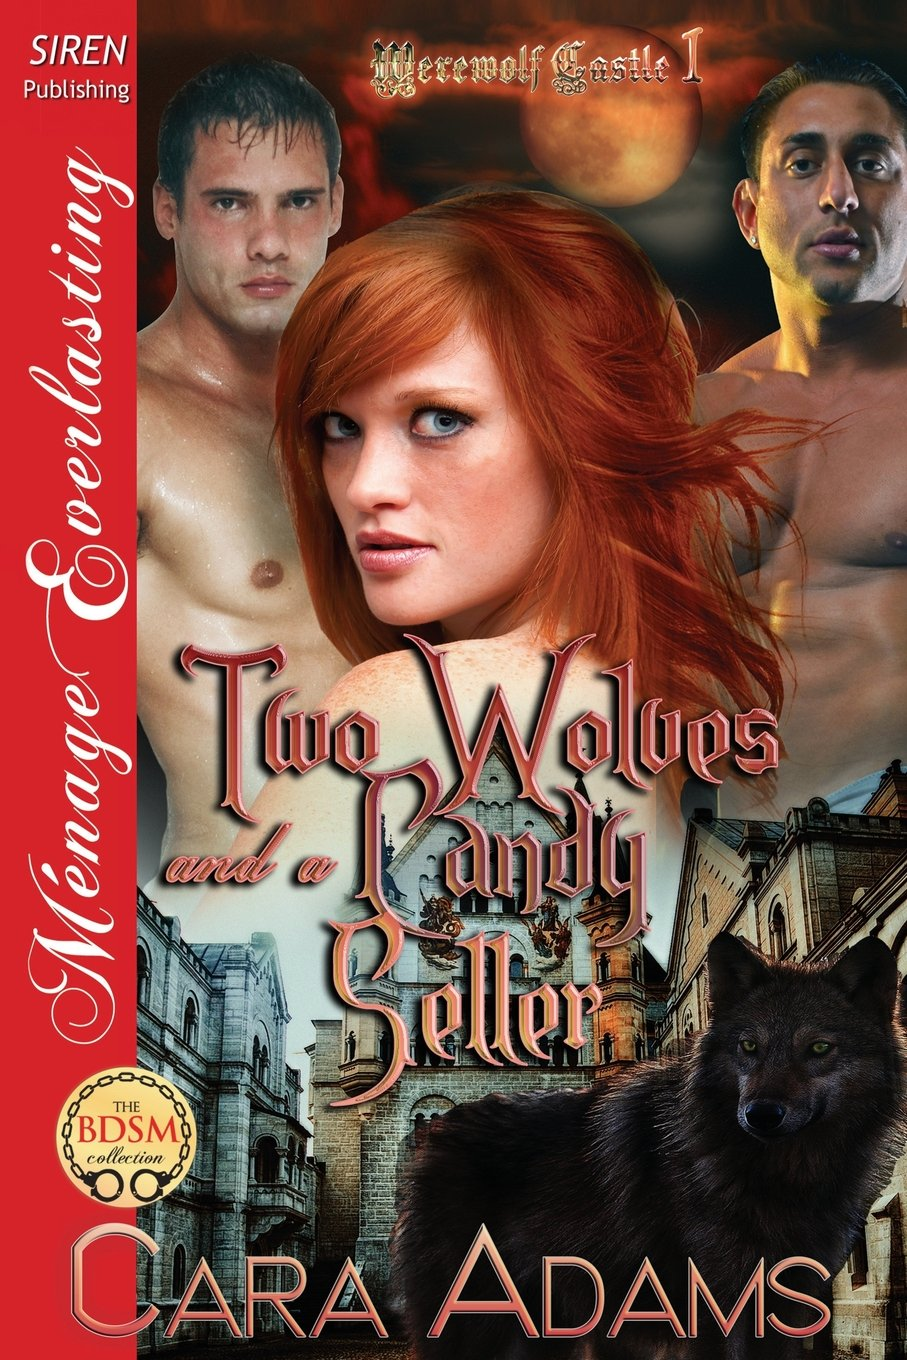 Read Online Two Wolves and a Candy Seller [Werewolf Castle 1] (Siren Publishing Menage Everlasting) (Siren Publishing Menage Everlasting: Werewolf Castle) PDF